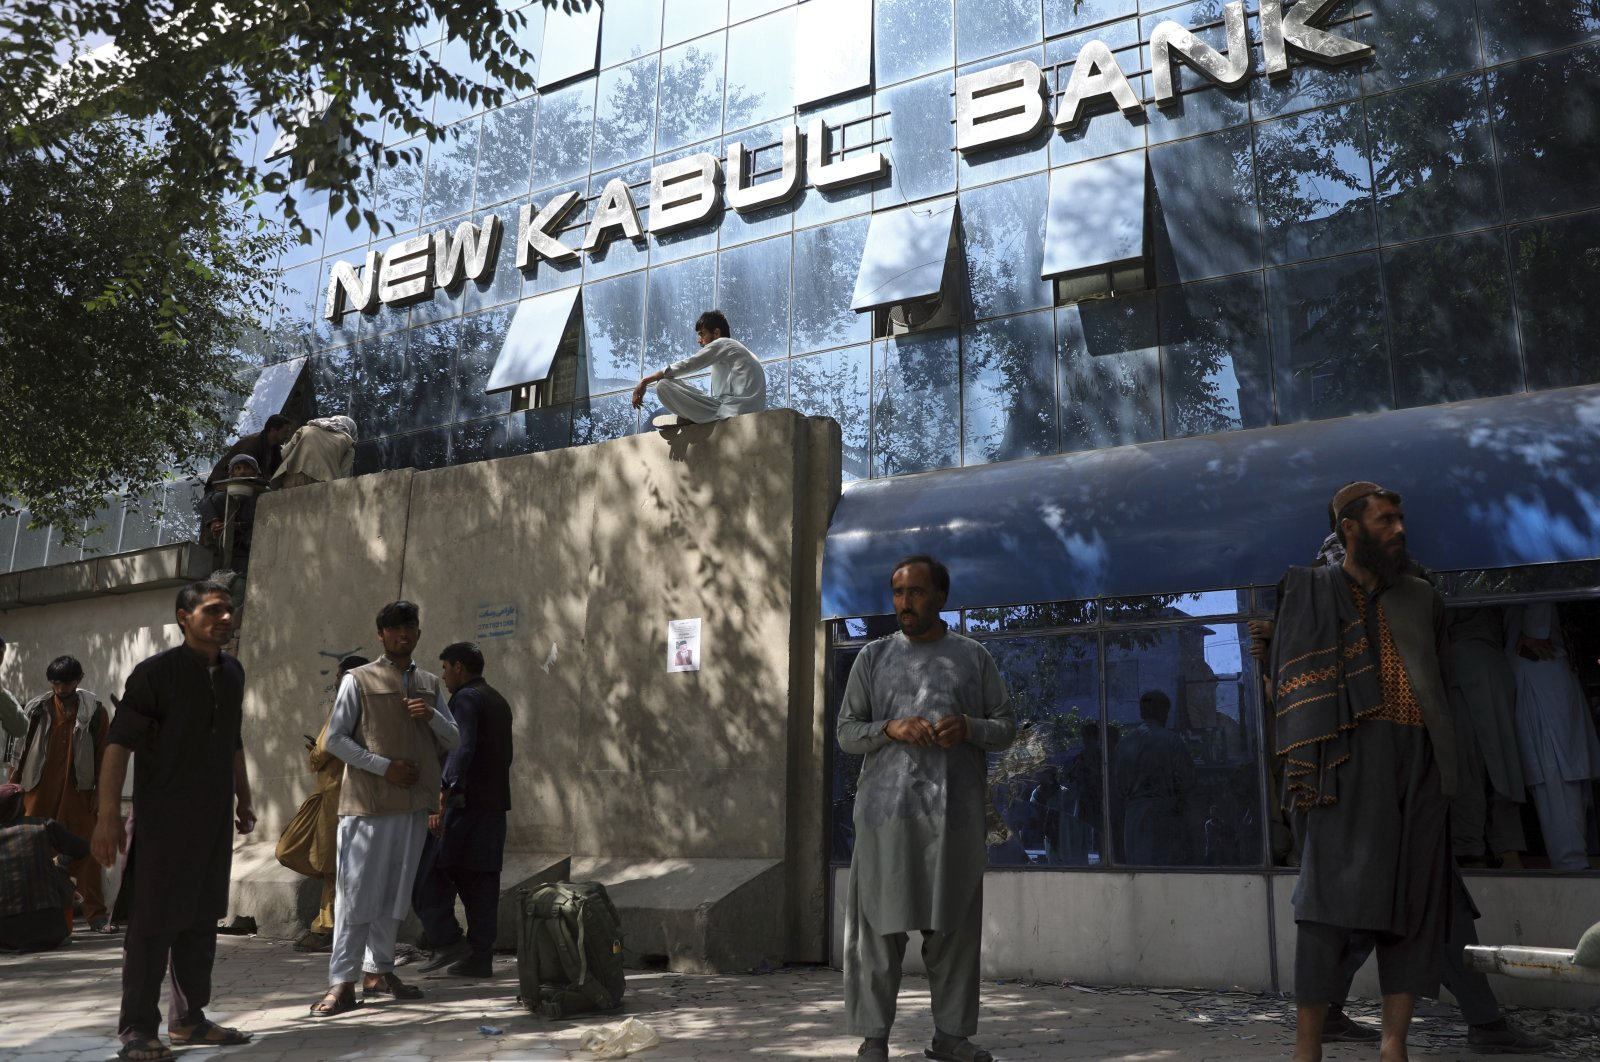 Afghans wait for hours to try to withdraw money, in front of Kabul Bank, in Kabul, Afghanistan, Aug. 15, 2021. (AP Photo)